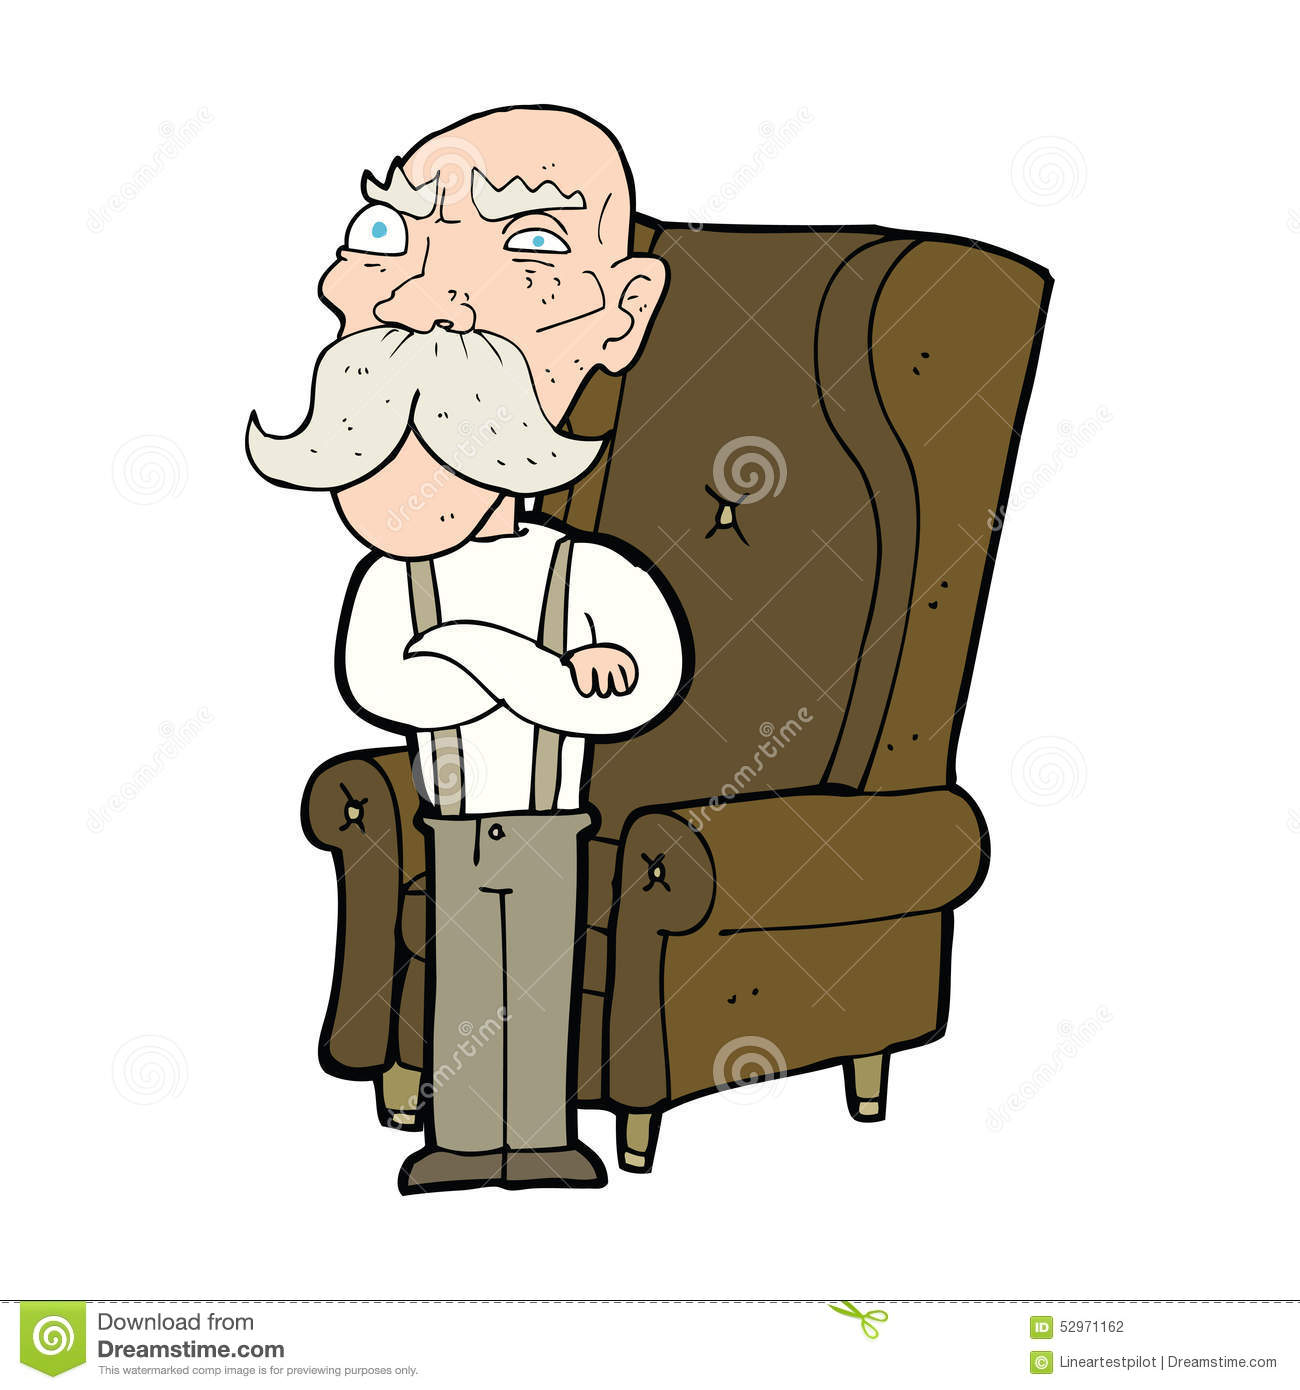 Cartoon Characters Old Man : Cartoon old man and chair stock illustration image